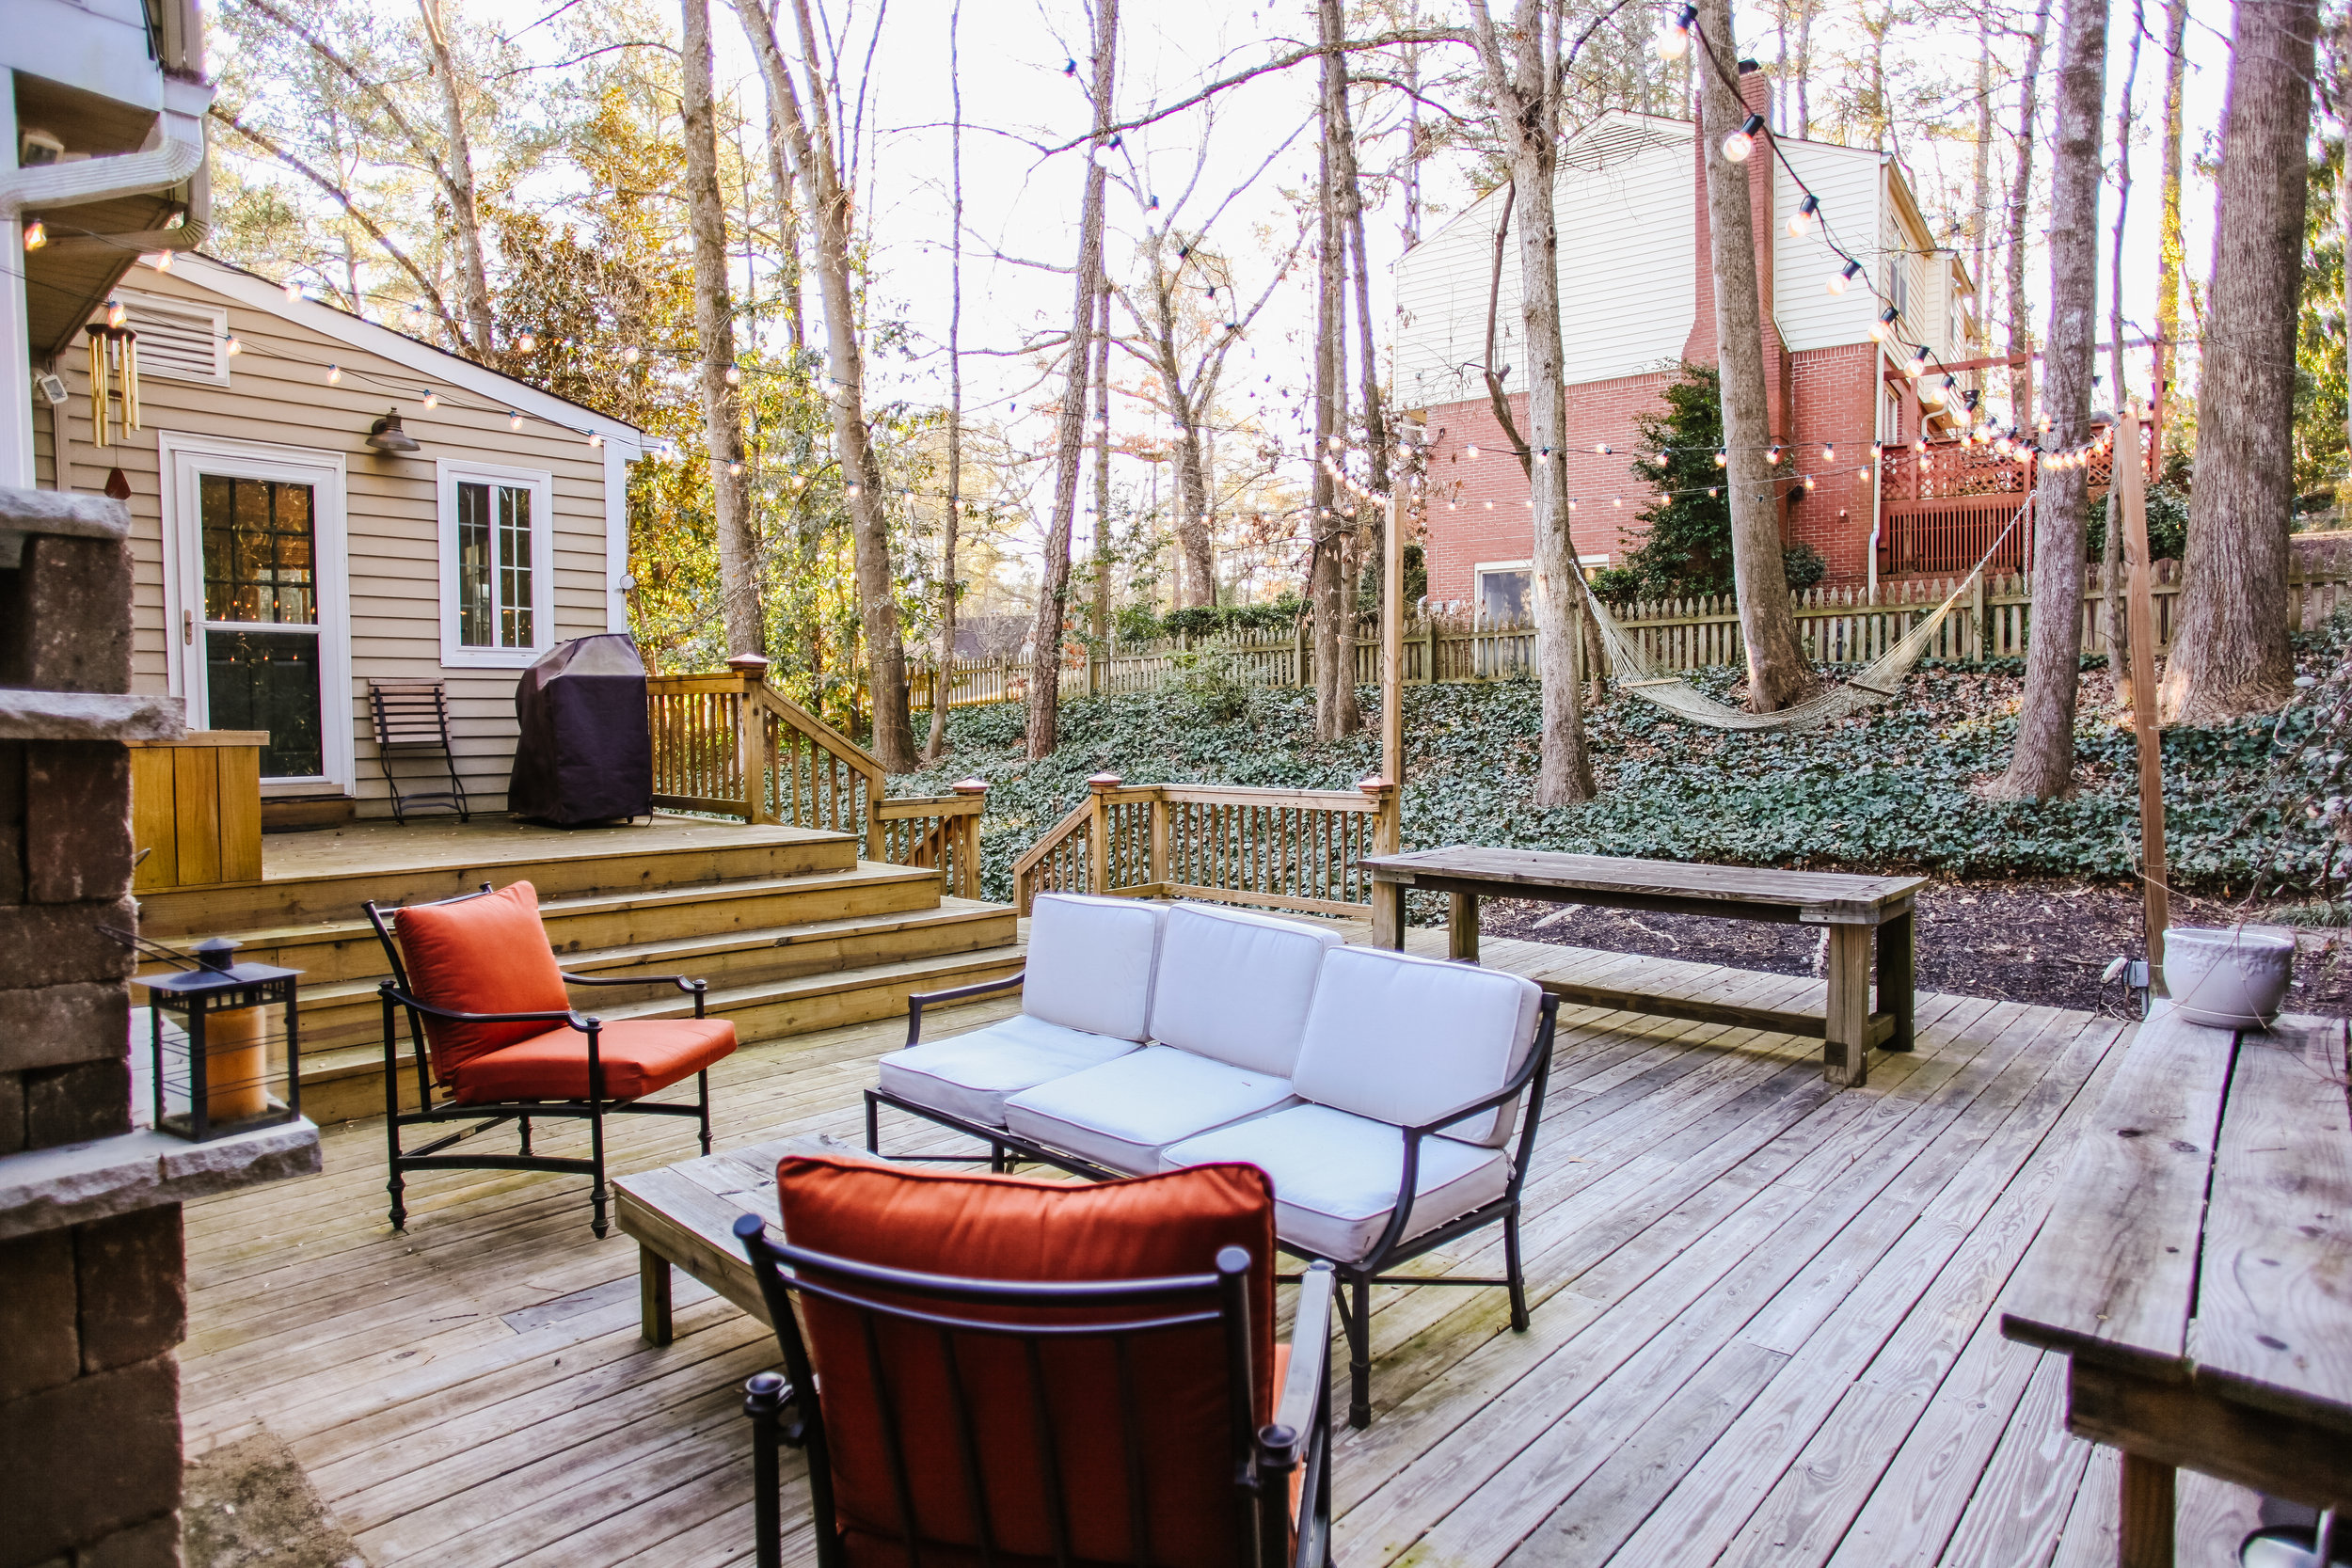 wingard-real-estate-sandy-springs-dream-home-backyard-goals-atlanta-buckhead-82.jpg